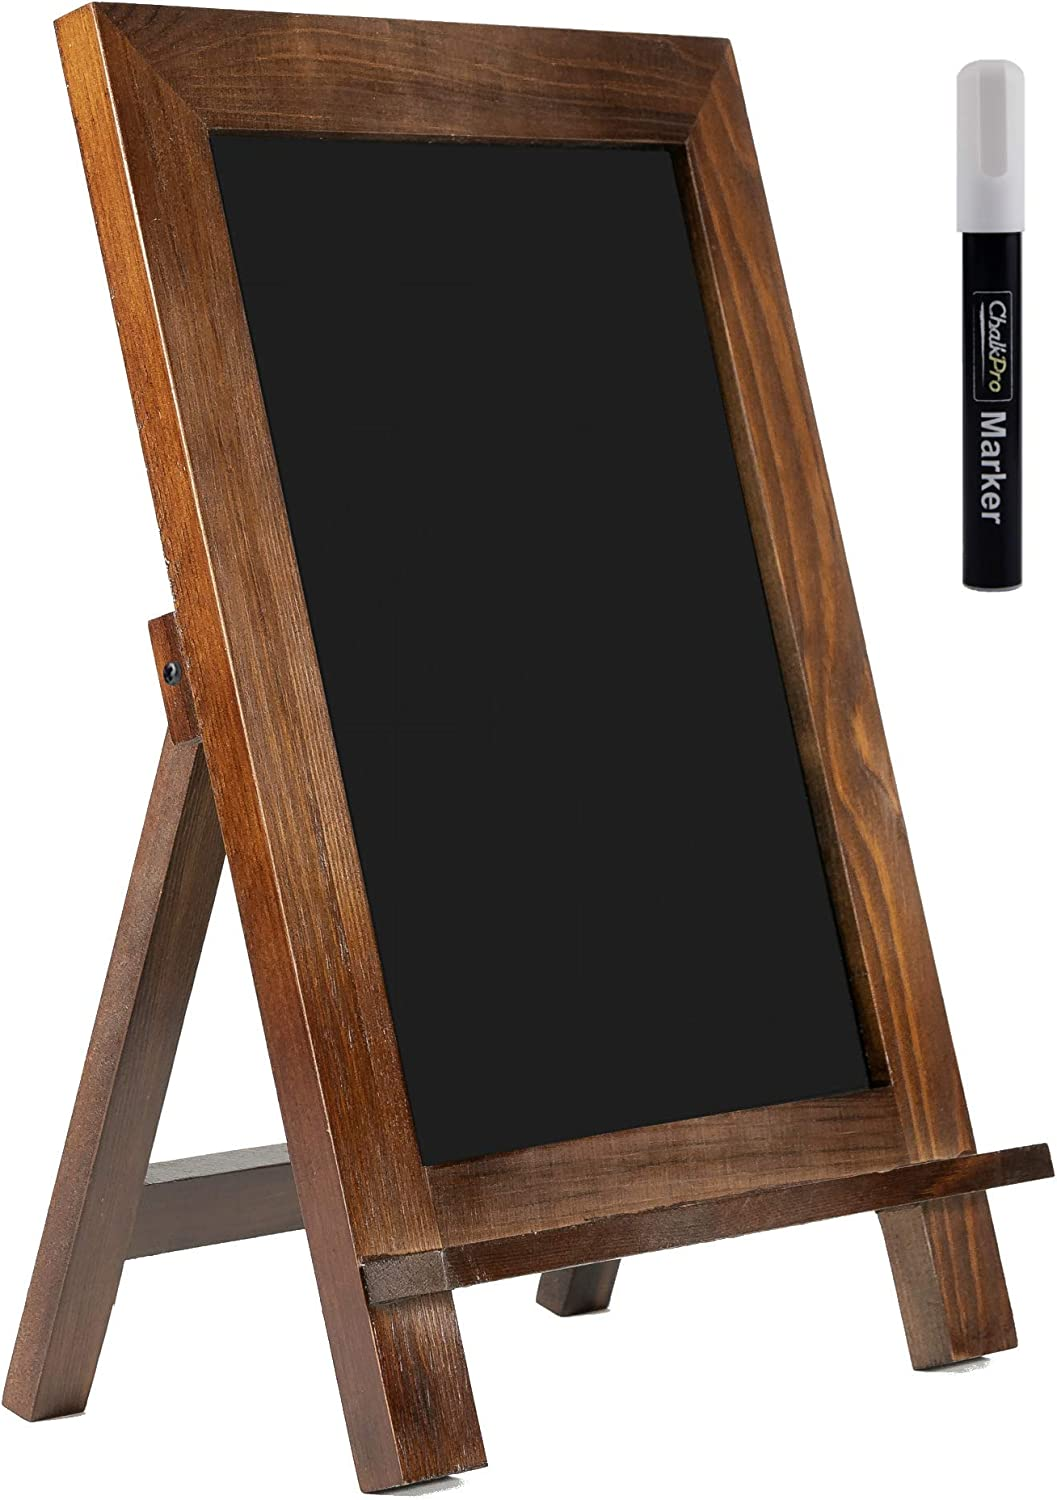 ChalkPro Wooden Framed Standing Chalkboard Sign (Rustic Brown) + Includes White Chalk Marker   Magnetic Non-Porous Memo Board   Décor for Kitchen, Home, Bar, Countertop, Wedding, Café, and Restaurant